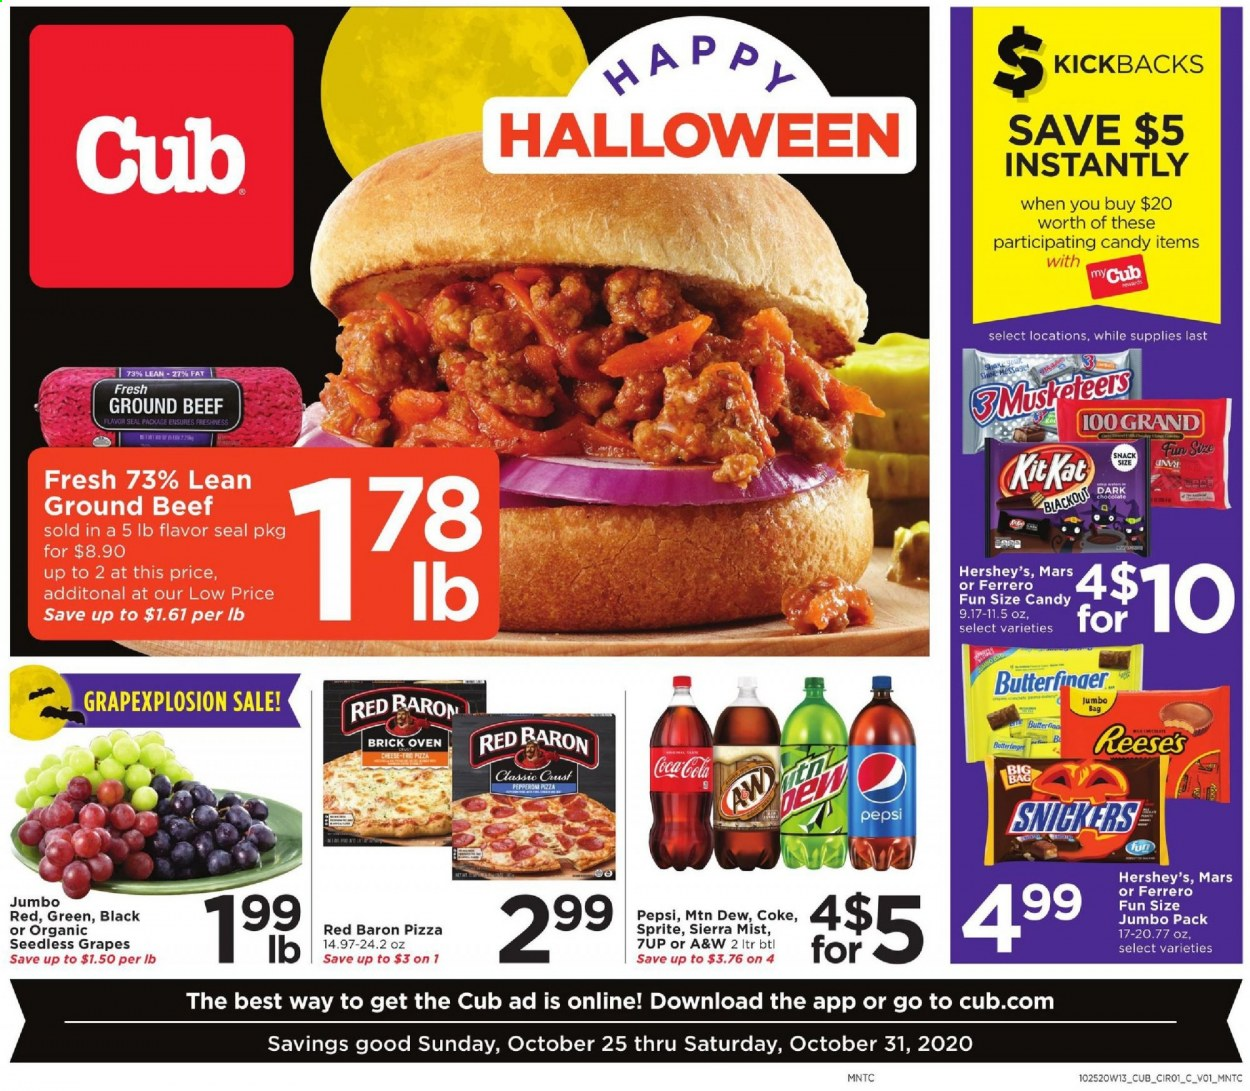 Cub Foods Flyer - 10.25.2020 - 10.31.2020 - Sales products - bag, beef meat, bittersweet chocolate, coca-cola, grapes, ground beef, seedless grapes, sprite, pizza, pepperoni, pepsi, oven, organic, chocolate, cheese, candy, snack, pen, snickers, mars. Page 1.